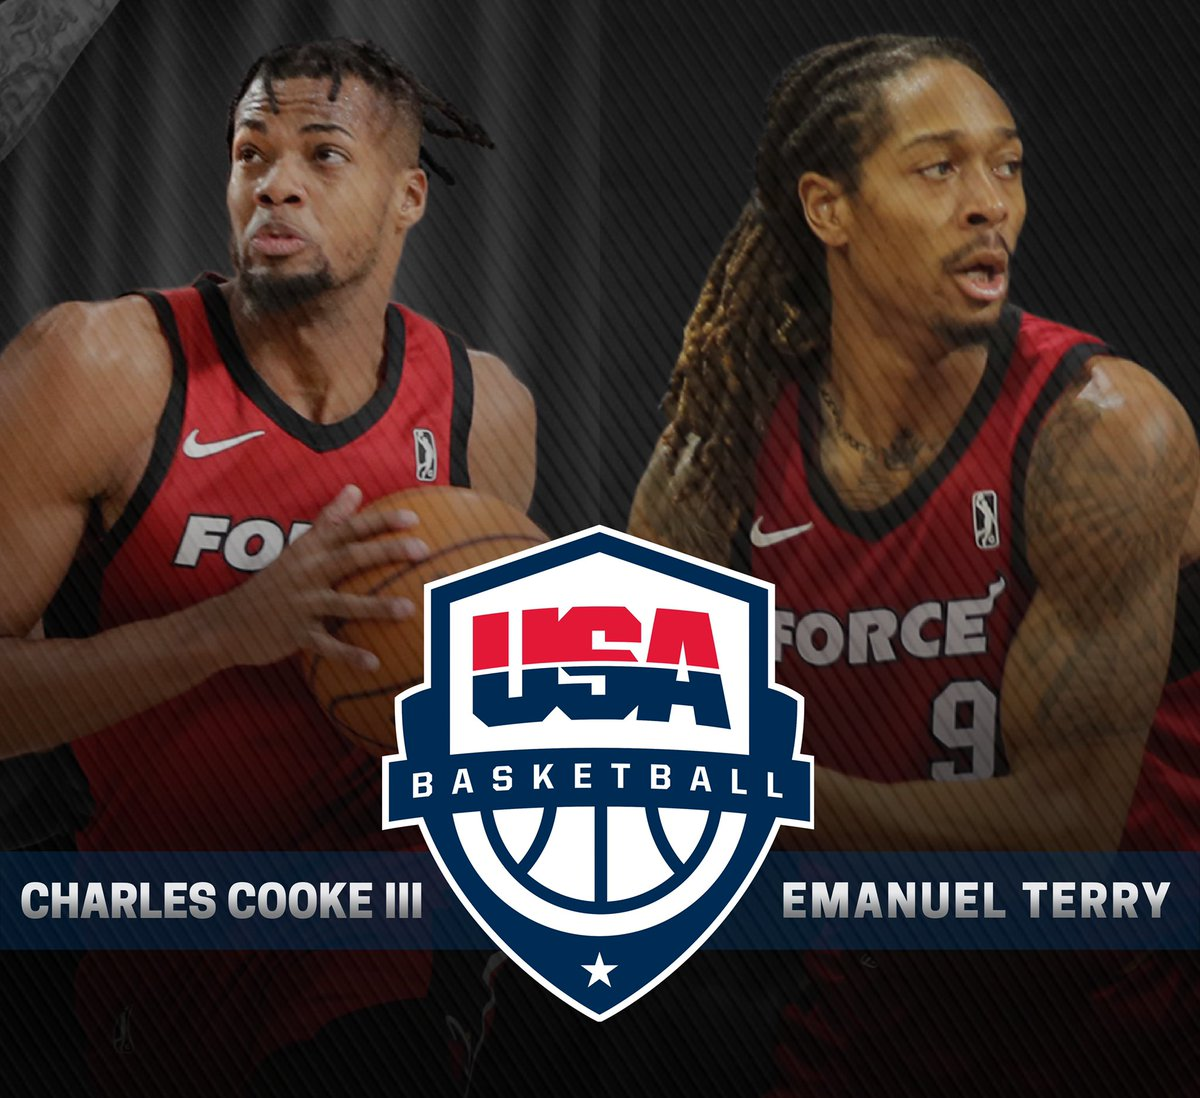 OFFICIAL | Charles Cooke III and Emanuel Terry have been added to the @usabasketball Men's World Cup Qualifying Team Training Camp Roster!   DETAILS &gt;&gt;  https:// on.nba.com/2TLjv05  &nbsp;  <br>http://pic.twitter.com/566yLcEfgX